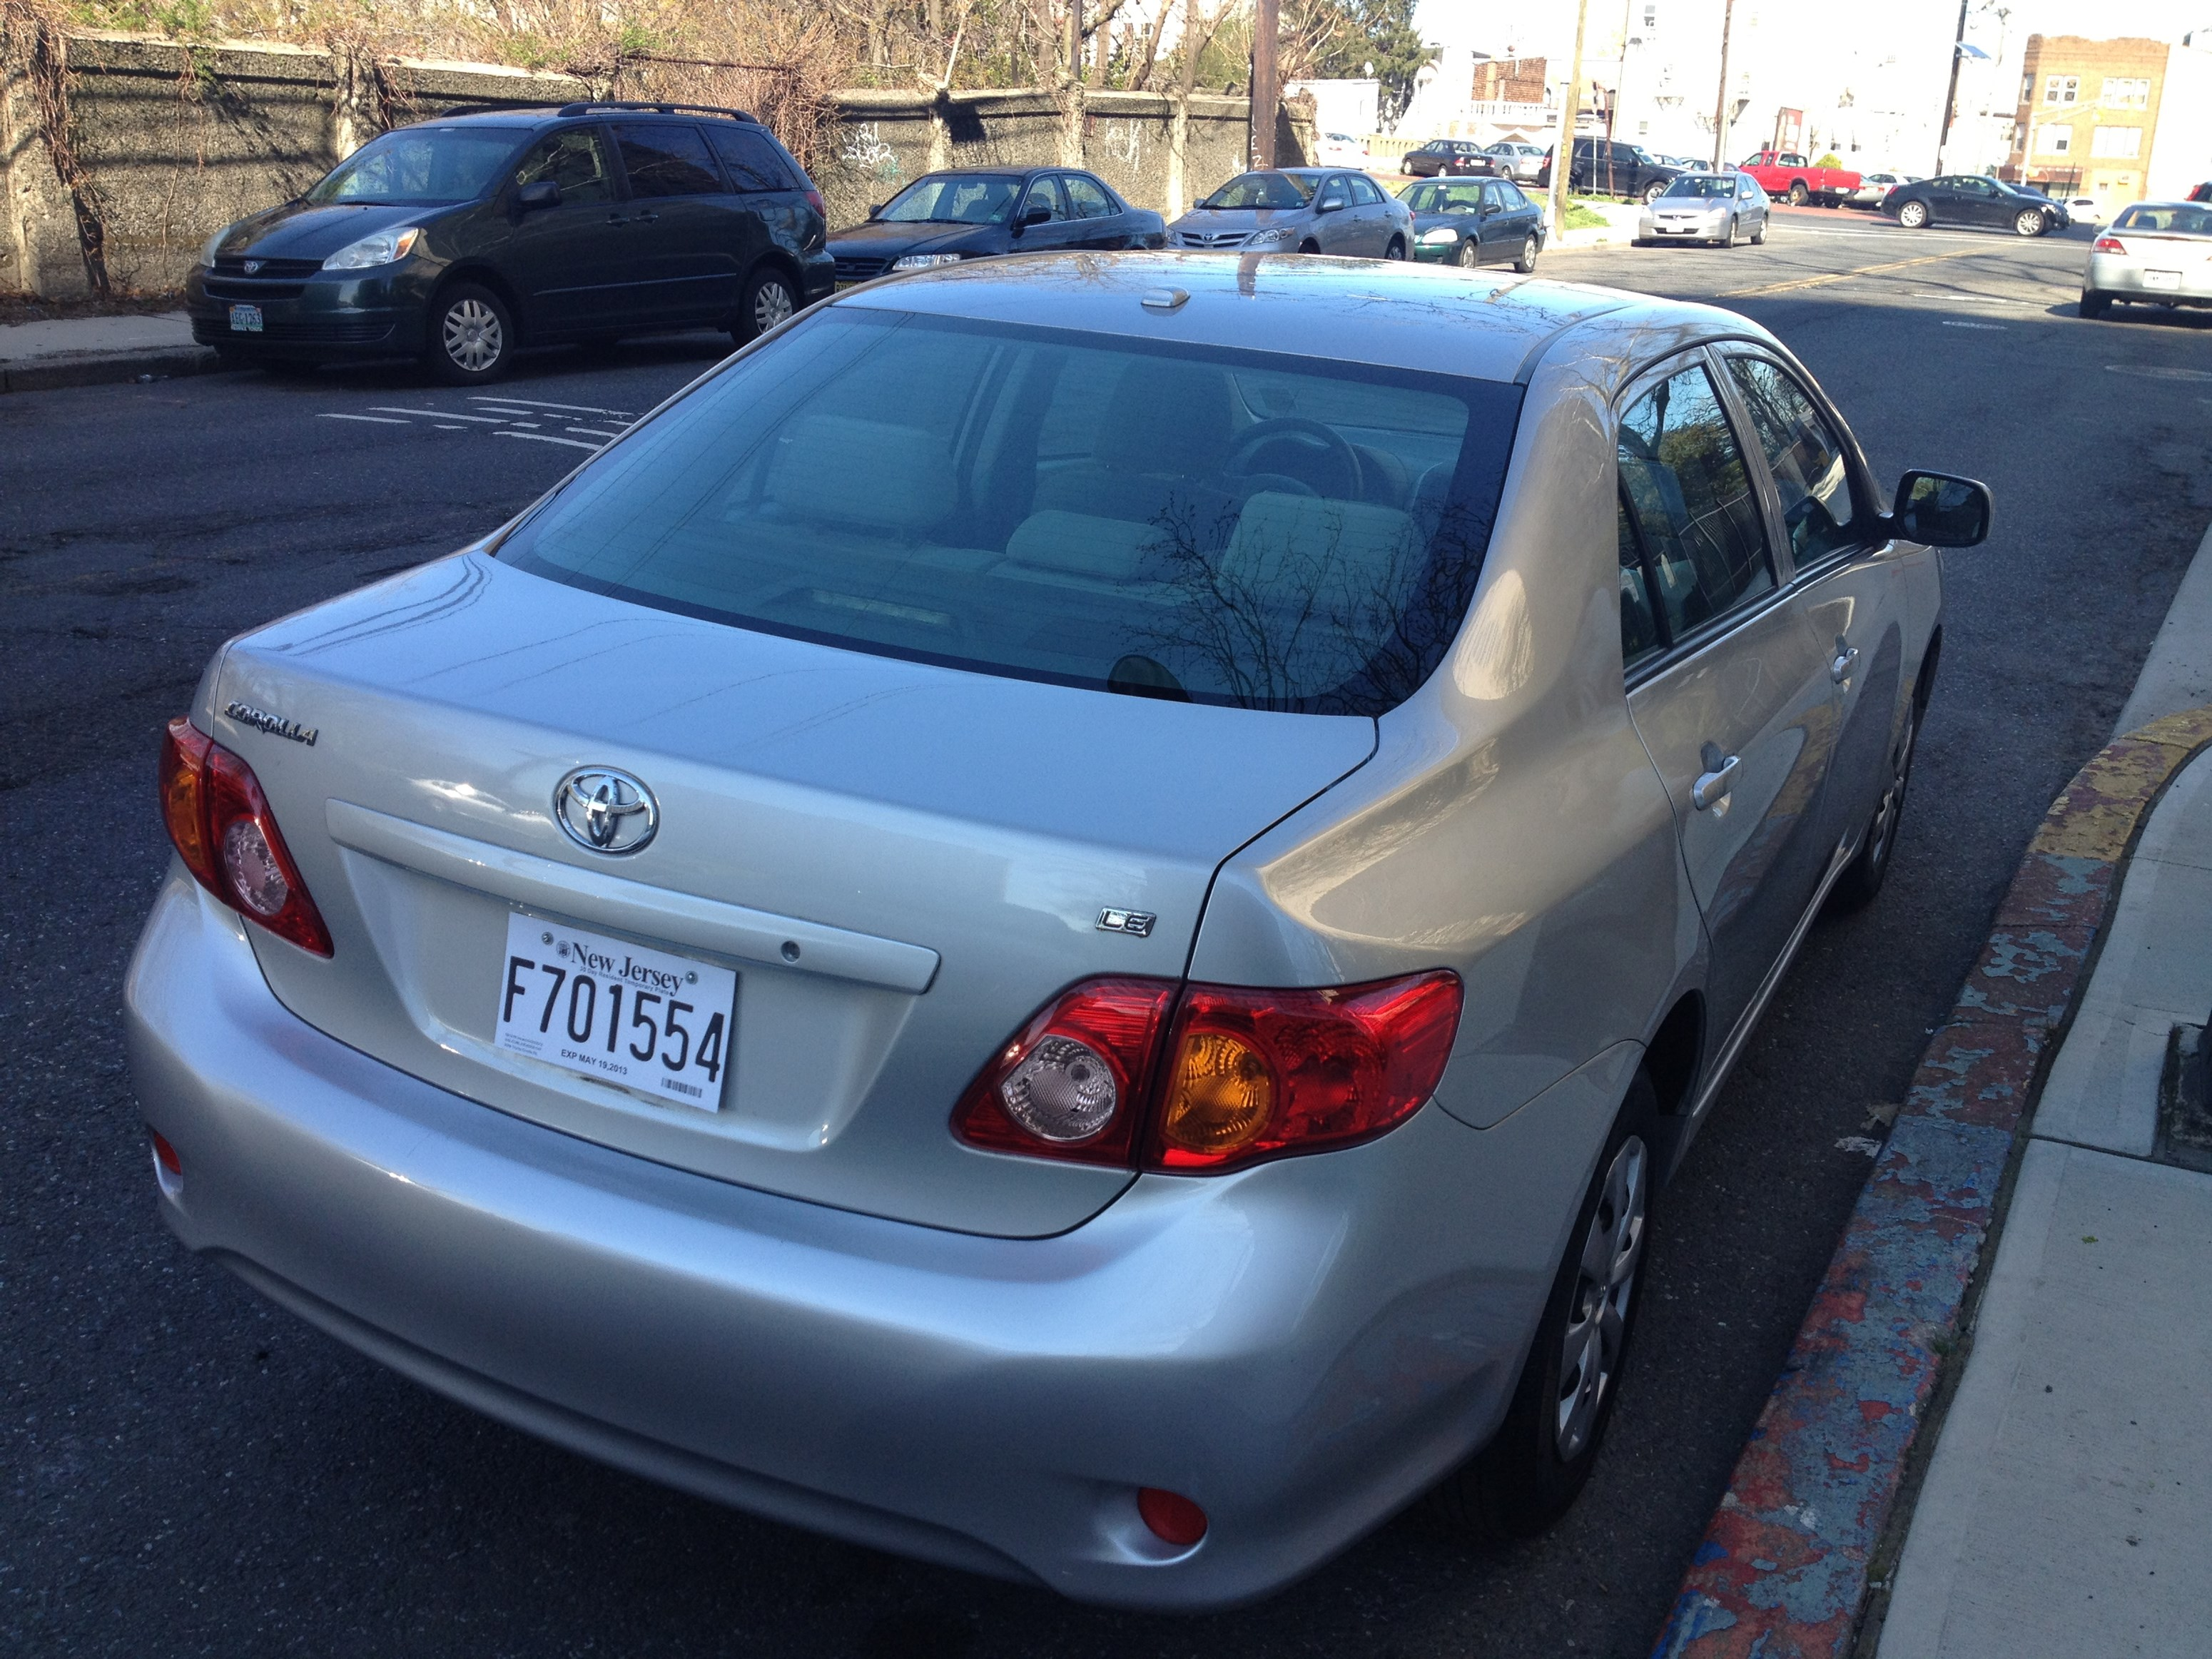 For Sale By Owner - Toyota Corolla 2009 LE/ Used Toyota Corolla Cars ...